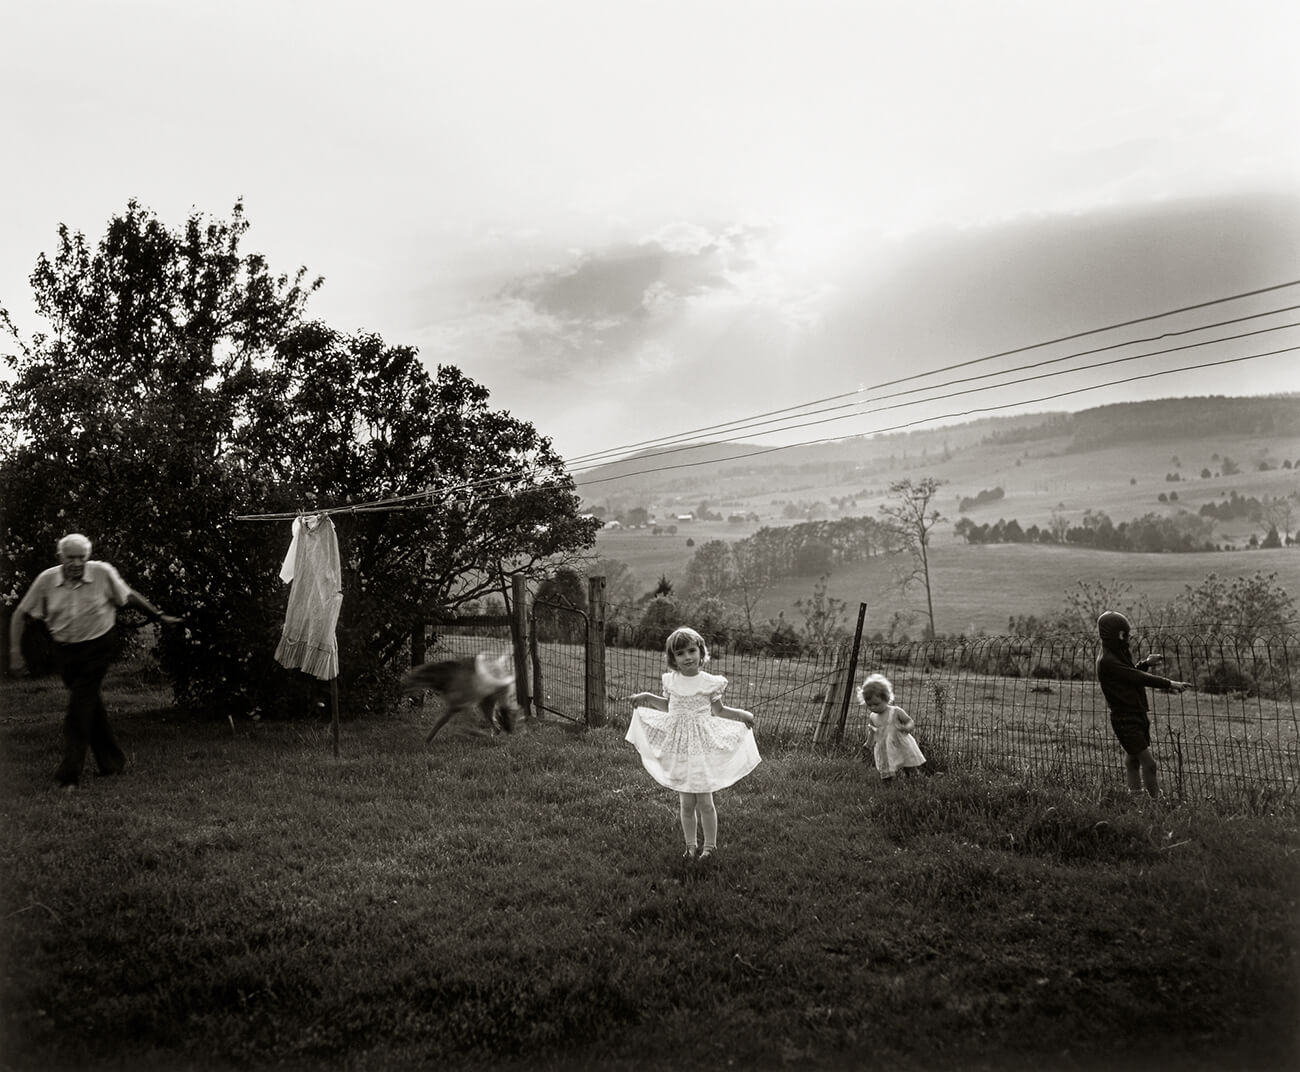 Black and white photo of a girl in a white dress in a yard, with two children playing behind her and an older man to the left.